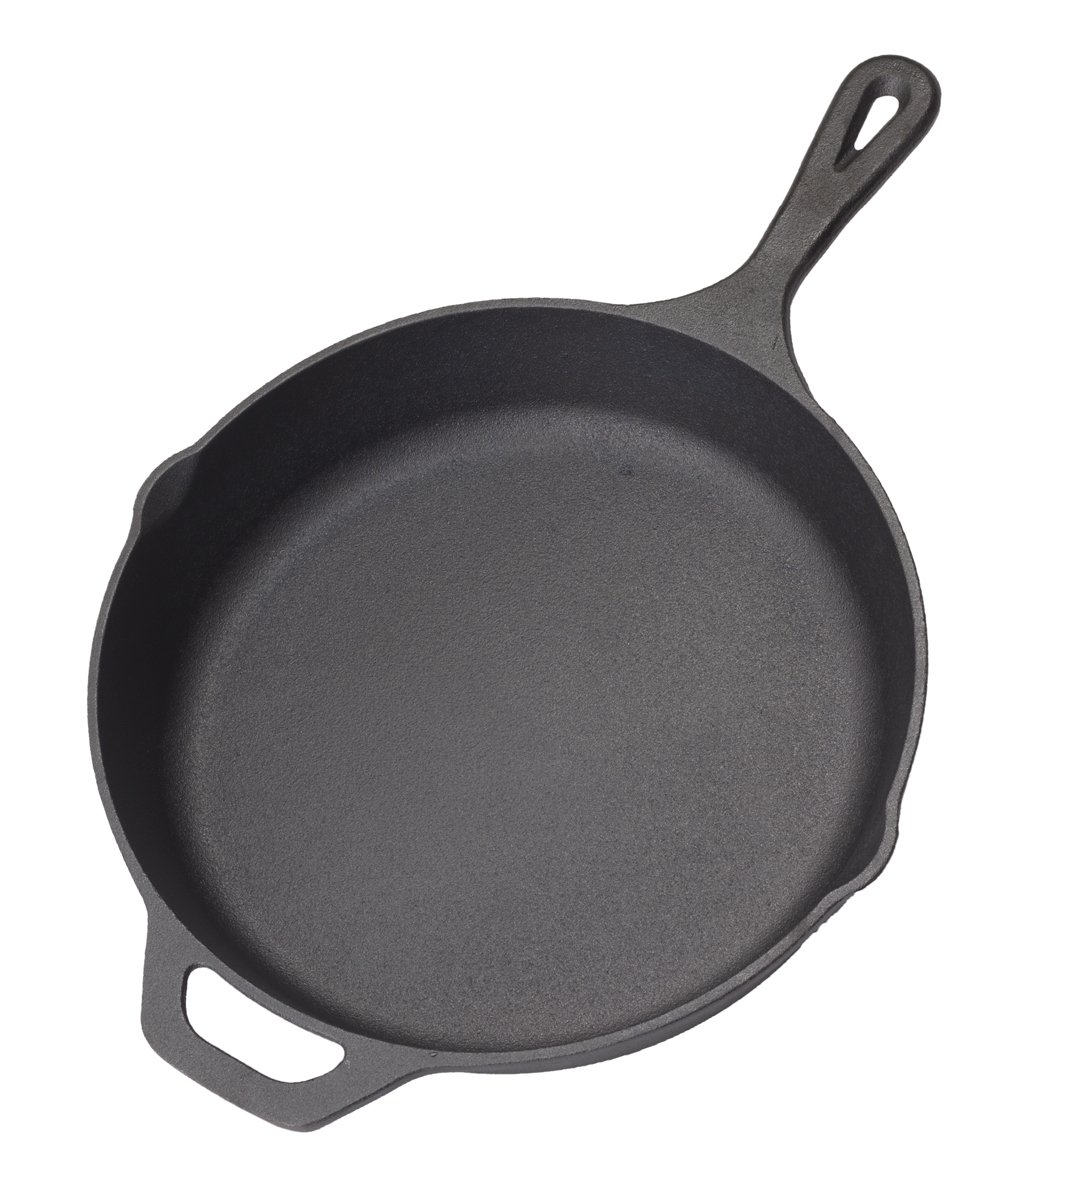 Pre-Seasoned Cast Iron Skillet – 12.5 Inch | Superb Heat Retention | Heavy Duty Nonstick Bakeware| Evenly Cooking | Nonstick Frying Pan | Rust Resistant | for Home Cooking & Commercial Kitchen